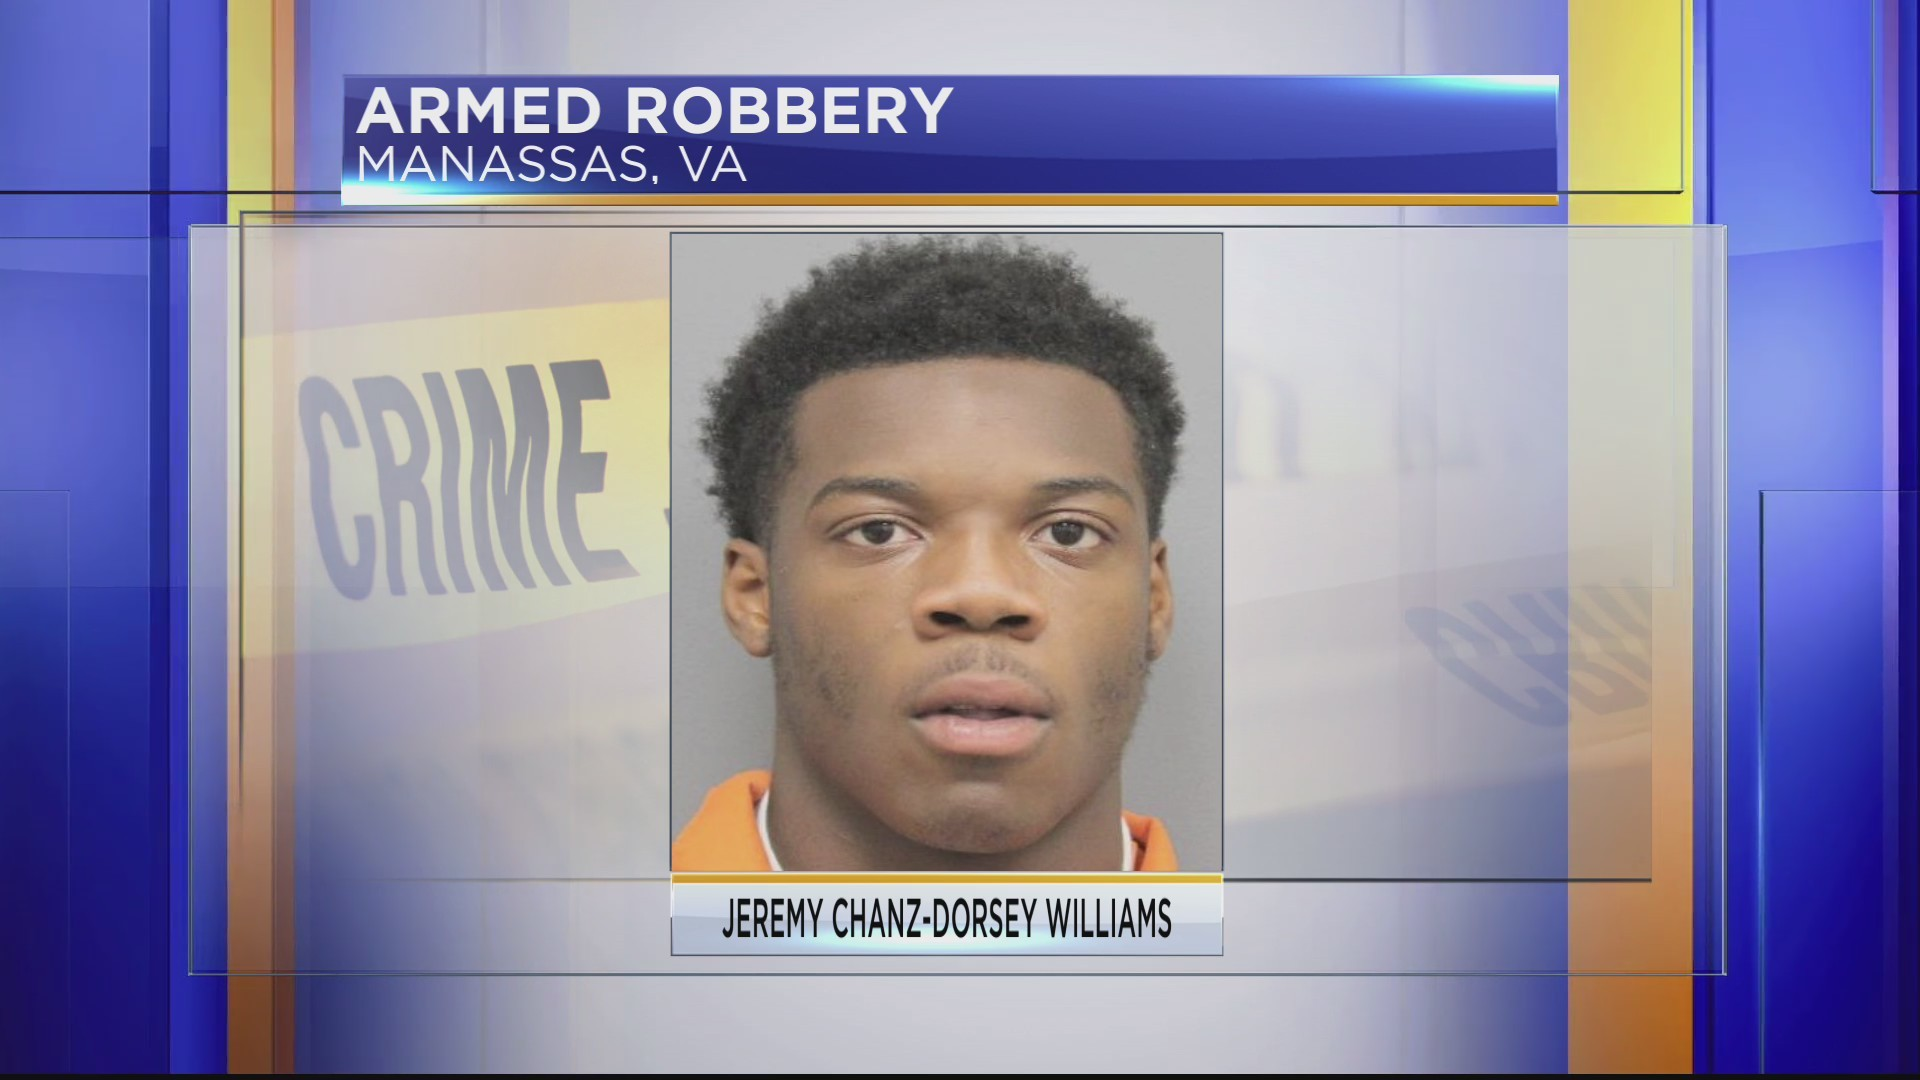 Armed_Robbery_0_20181013021501